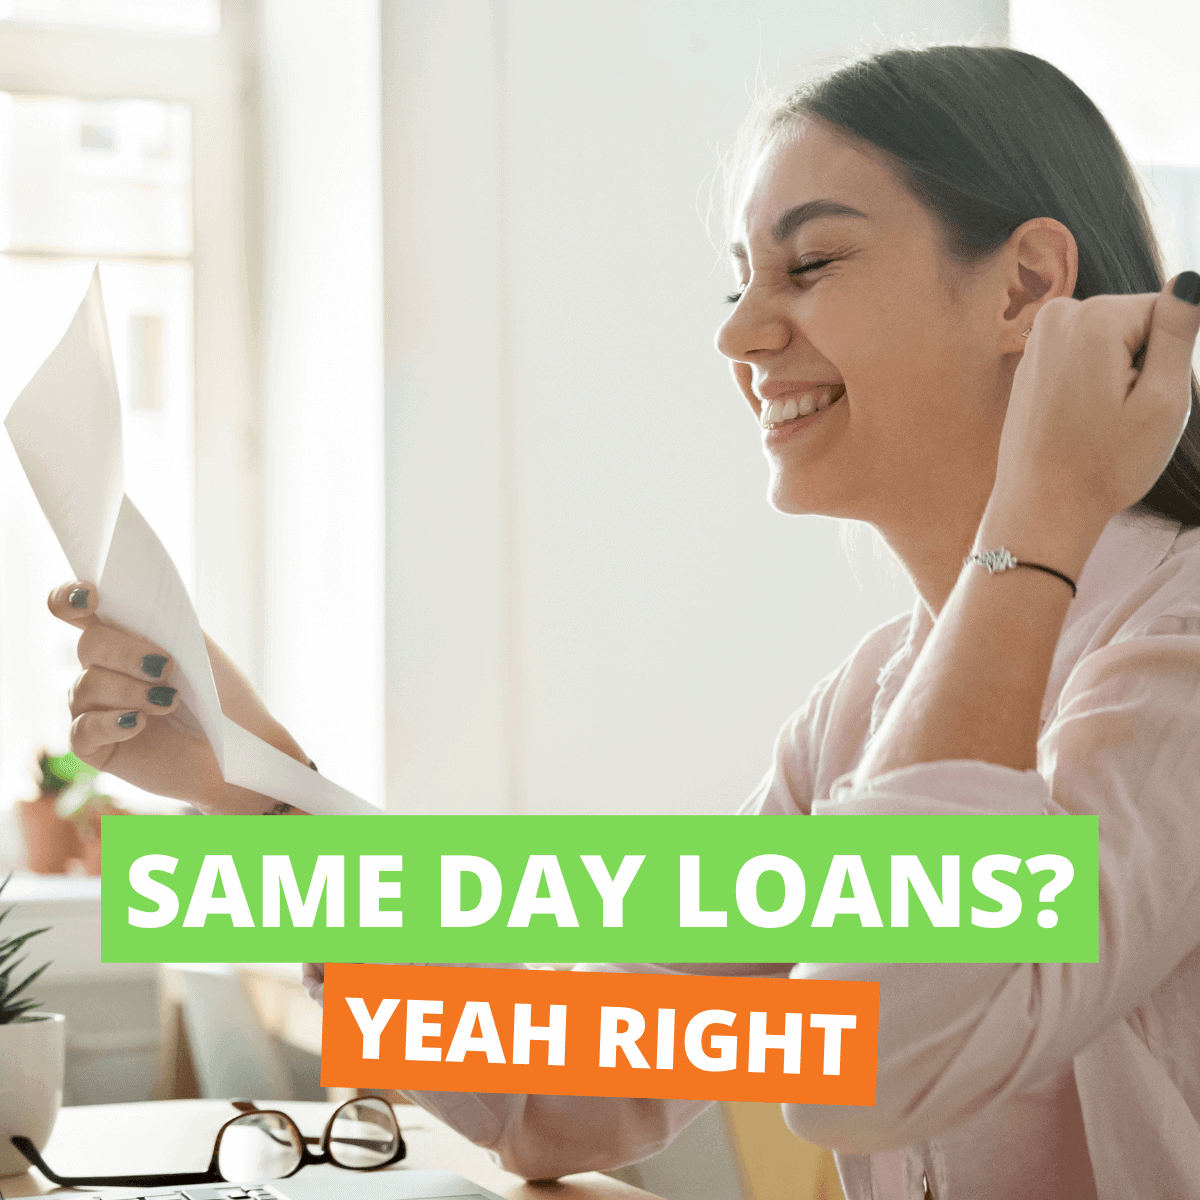 Same Day Loans? Yeah Right.